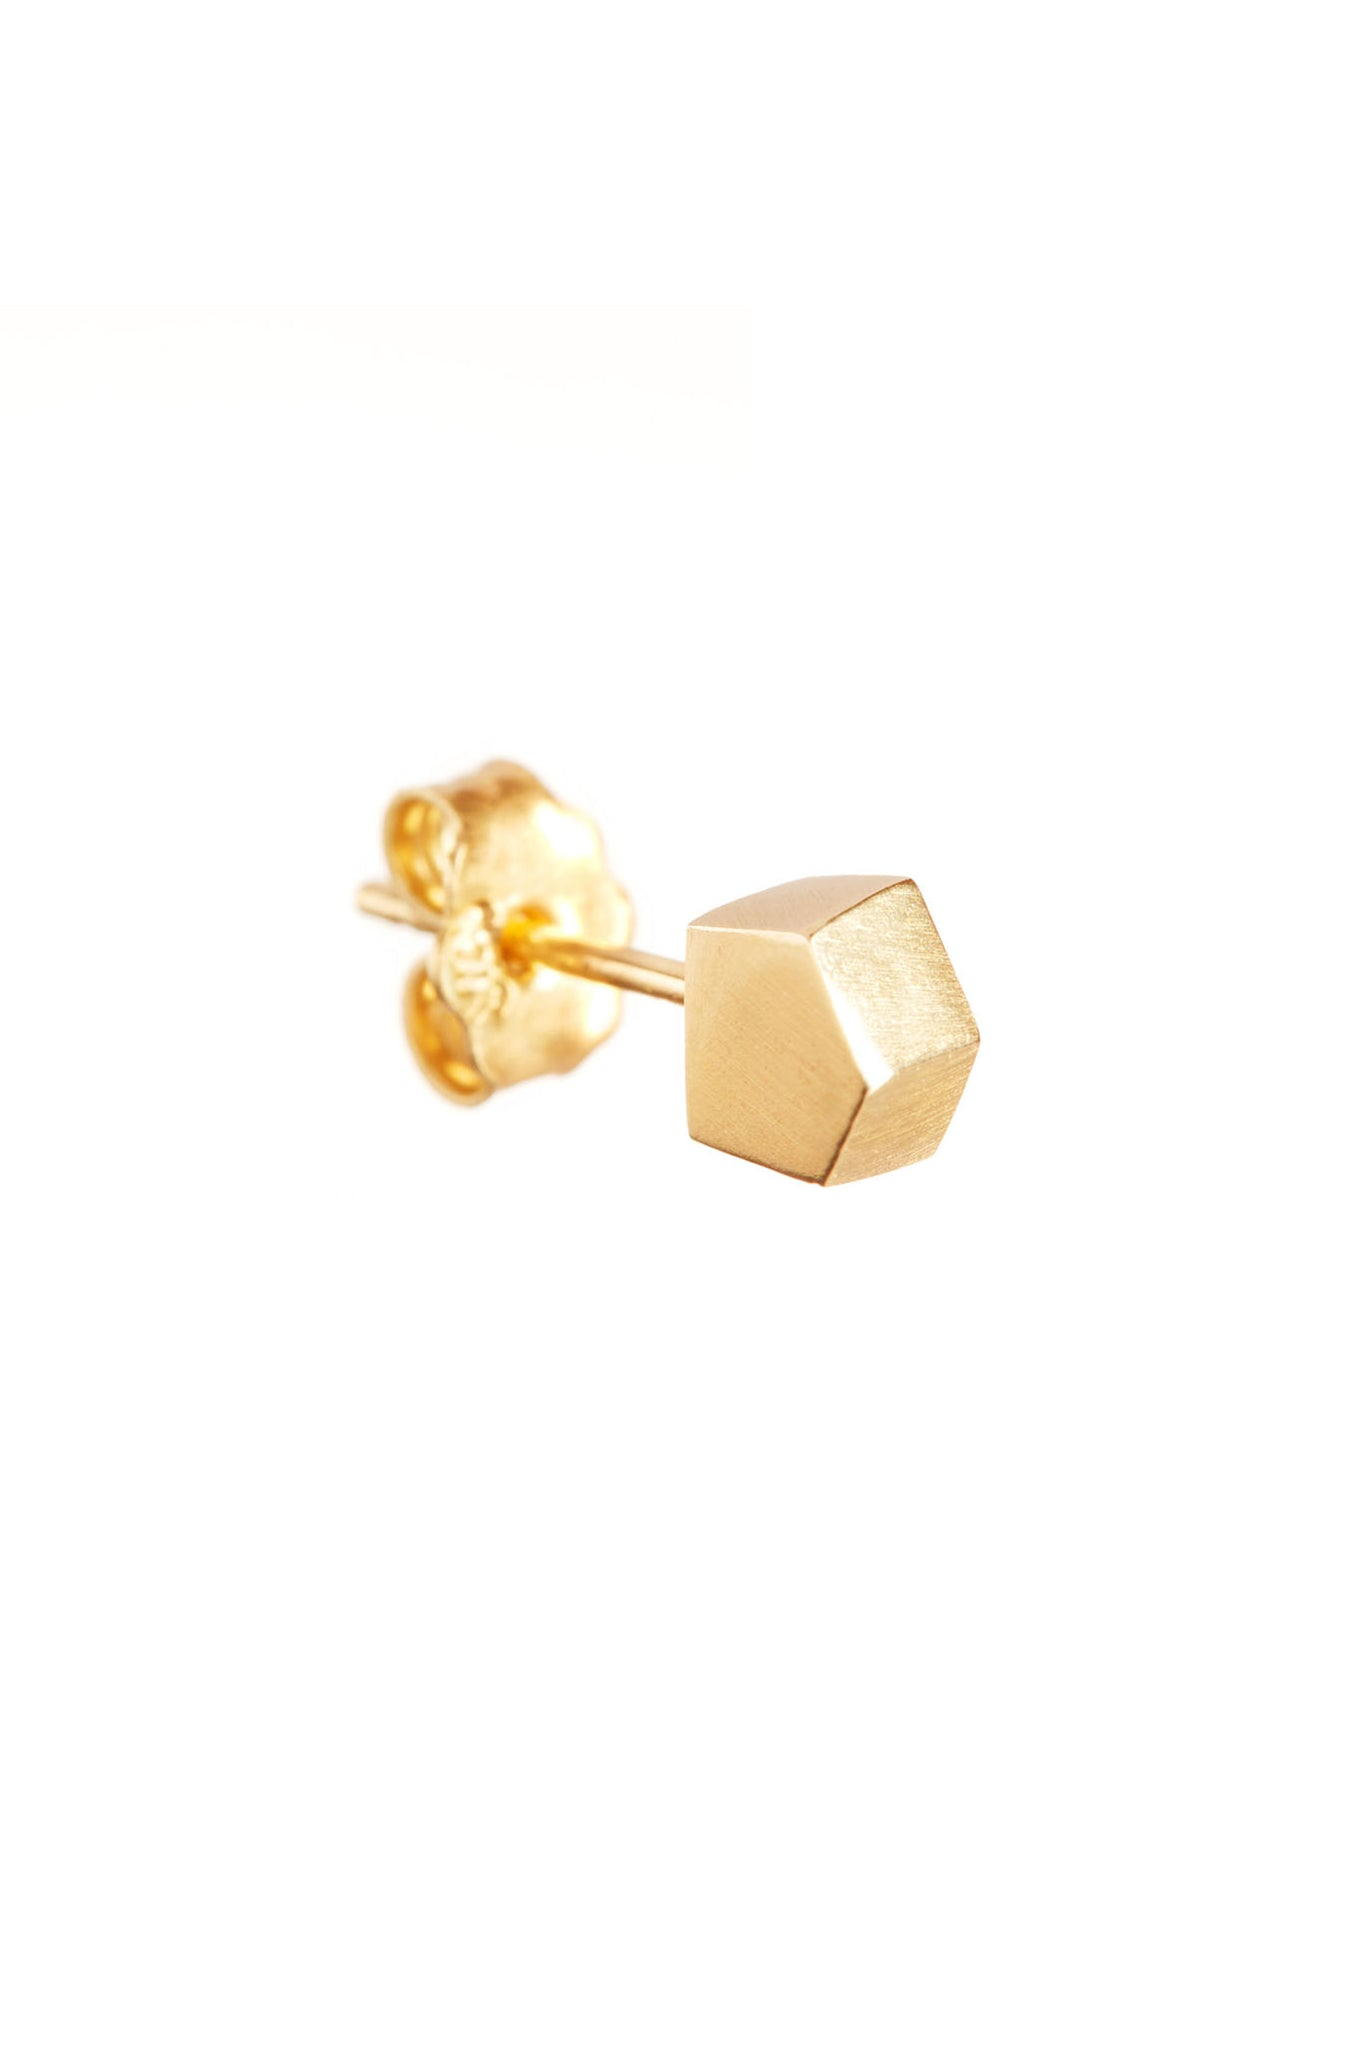 GOLD POINT EARRING